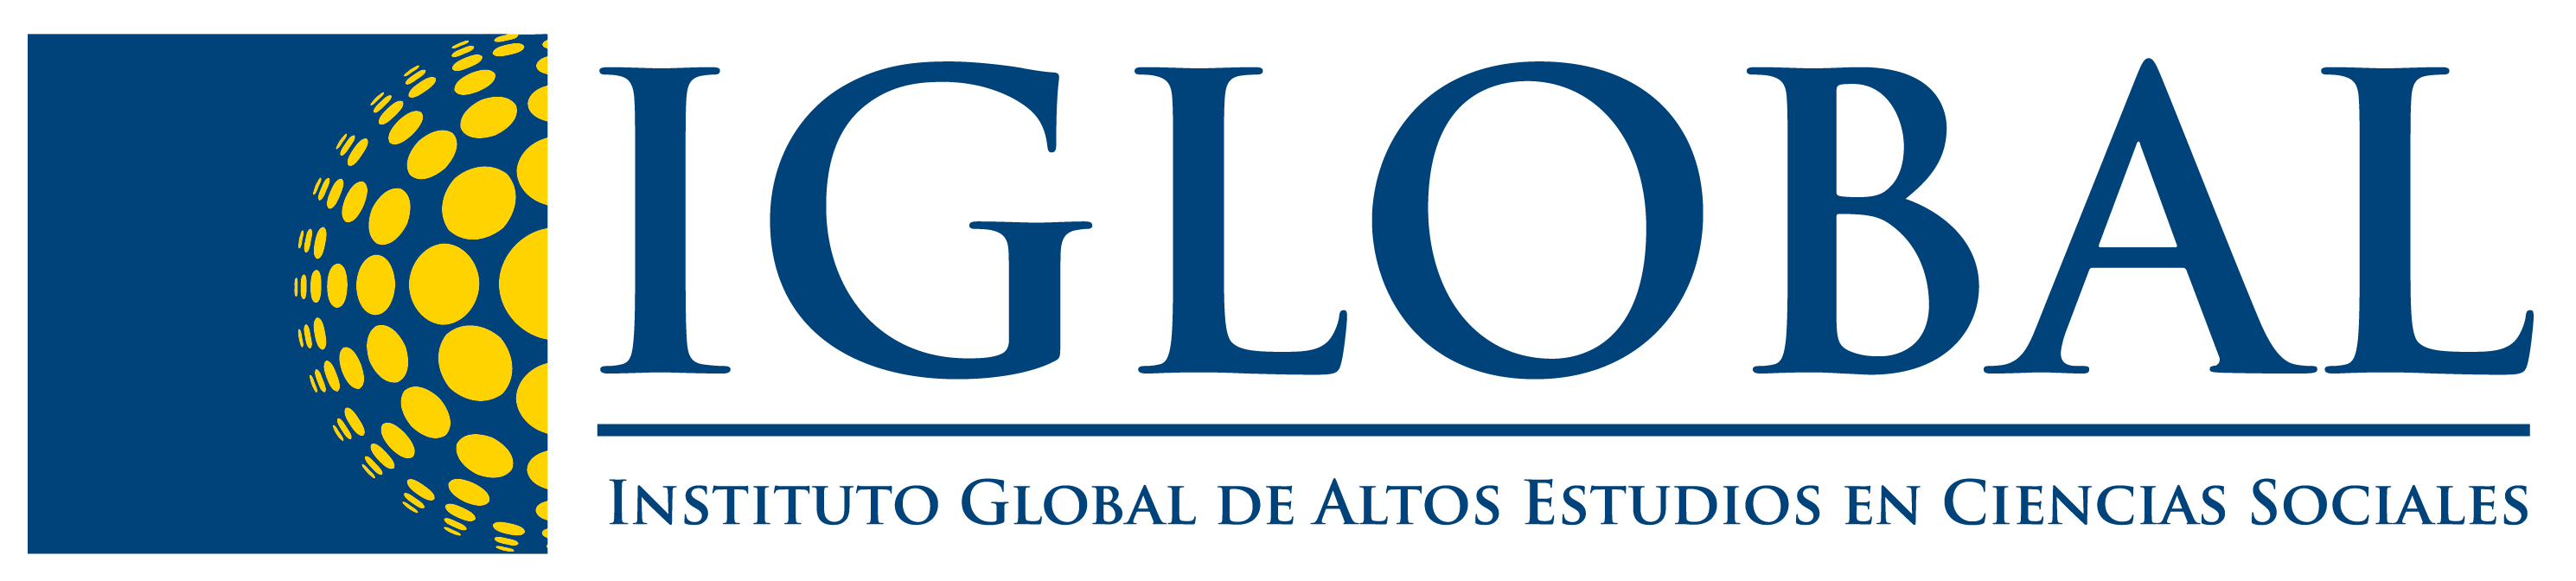 LOGO IGLOBAL.png